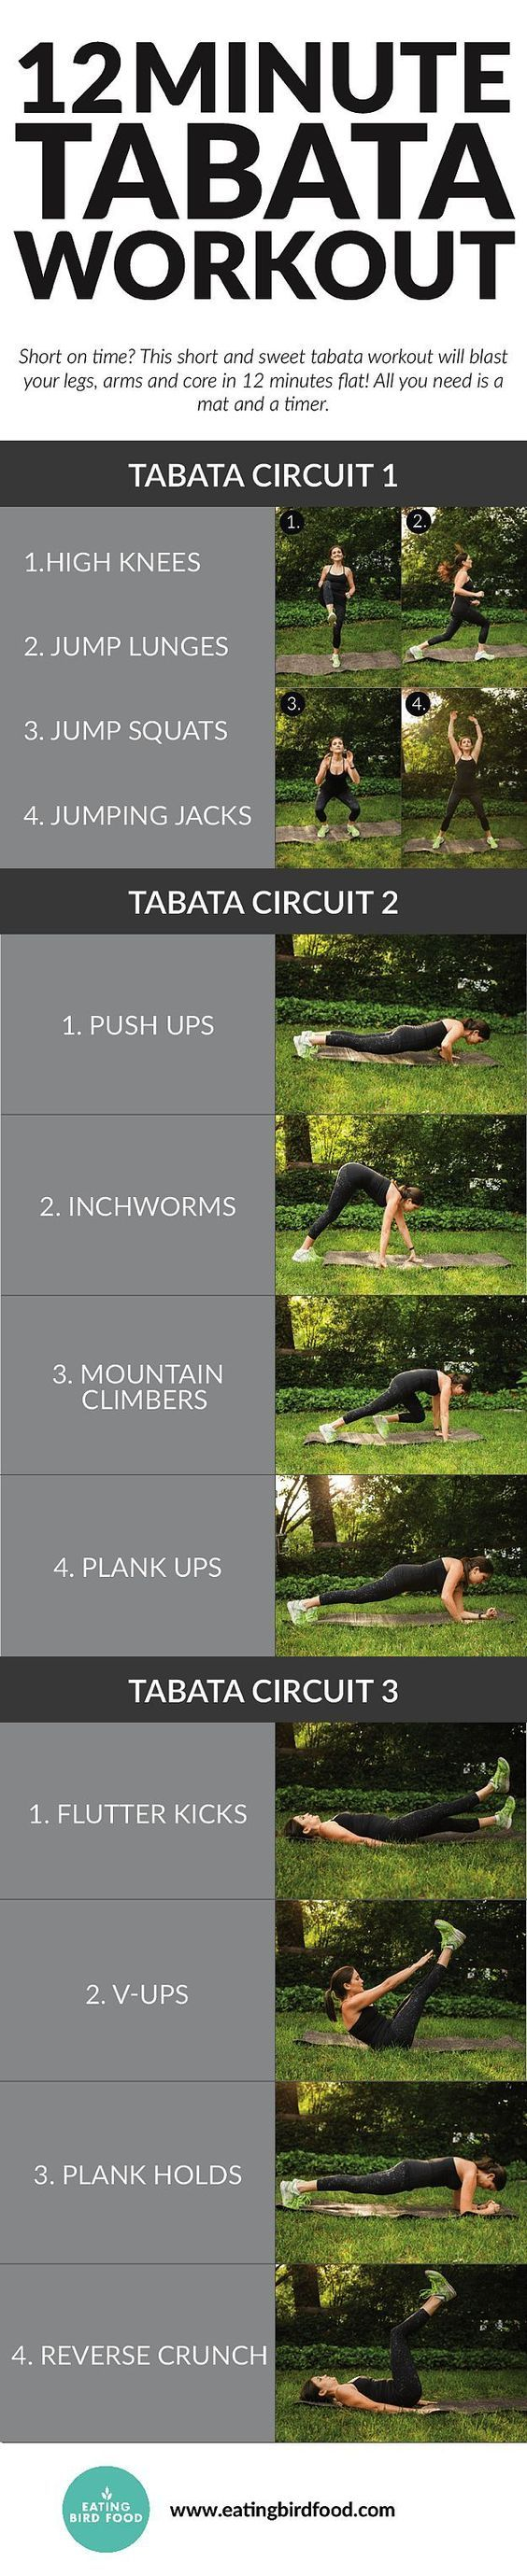 You do each circuit twice with 20 seconds of work and 10 seconds of rest for each move. You can also take a 1 minute break between each circuit making the whole routine 15 minutes.